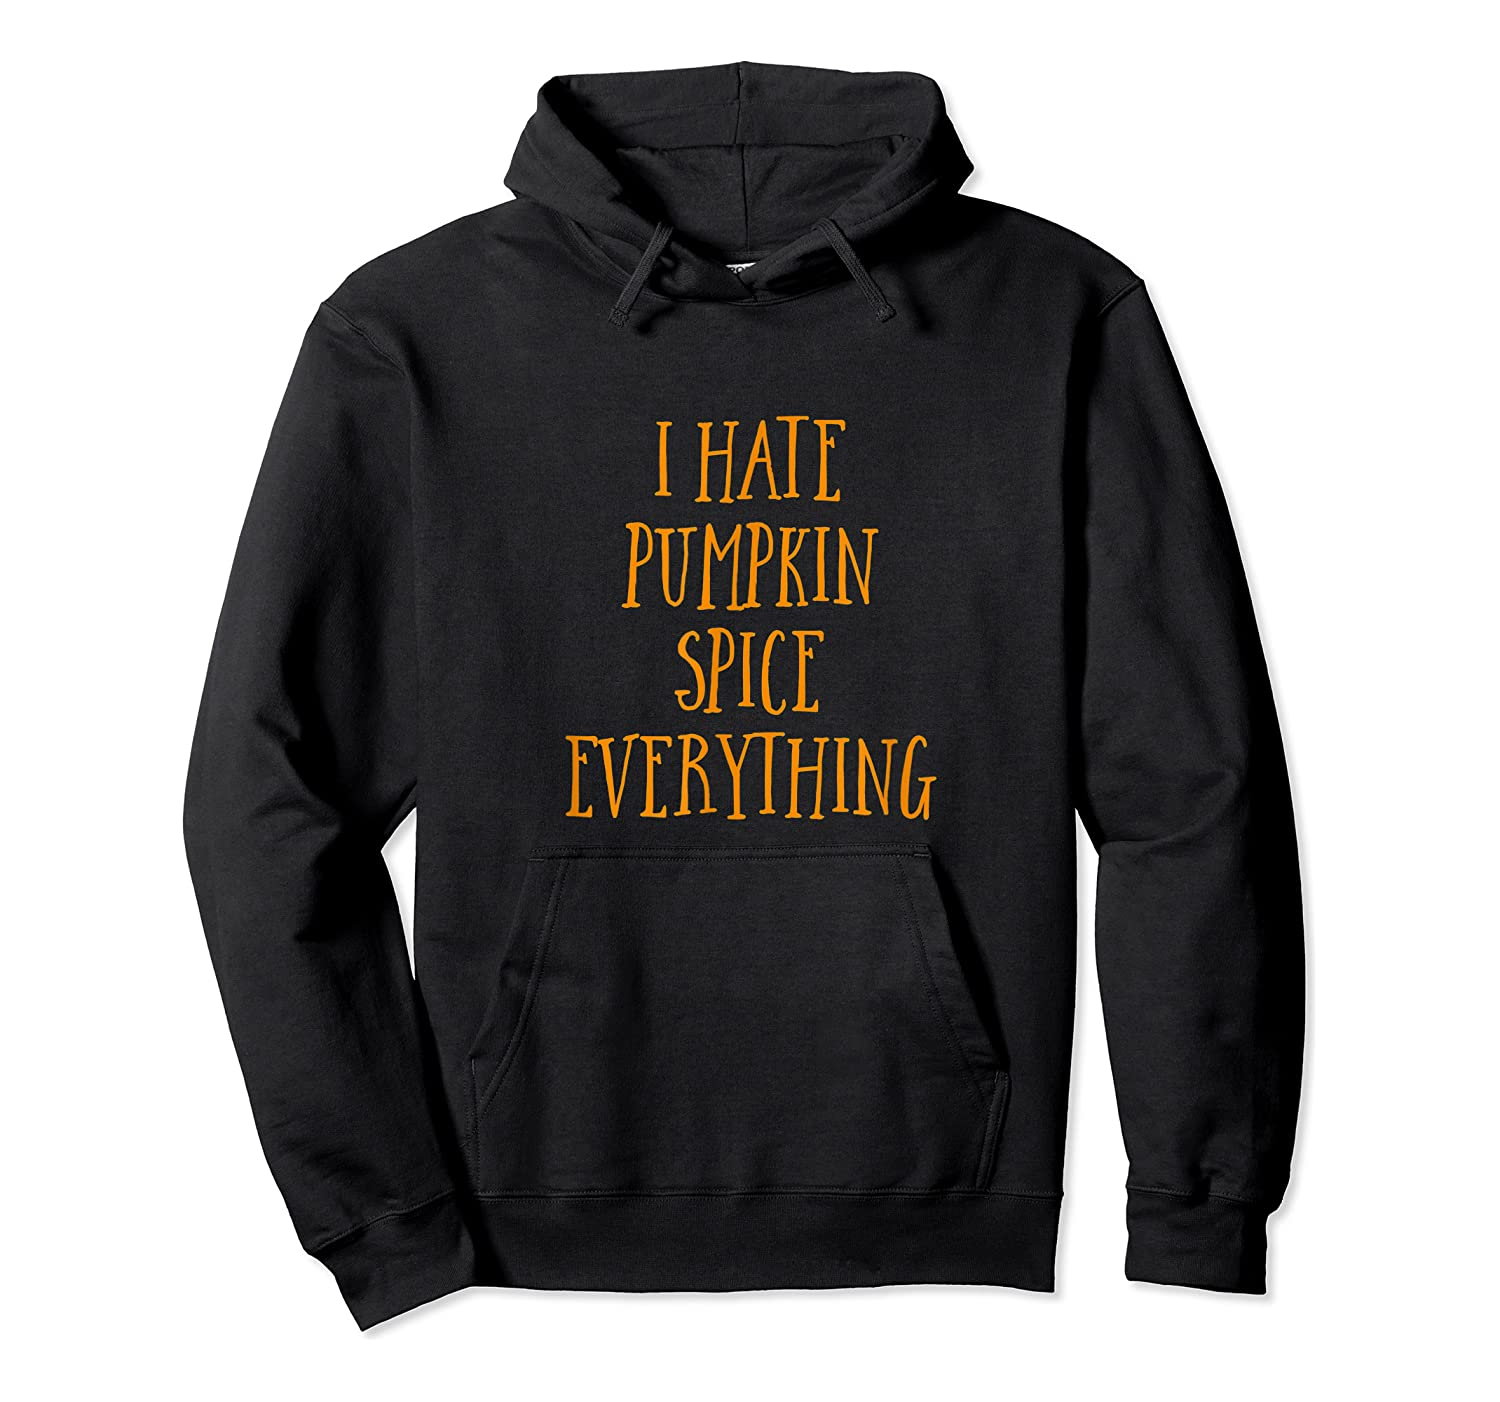 I Hate Pumpkin Spice Everything Funny Halloween Shirt Unisex Pullover Hoodie